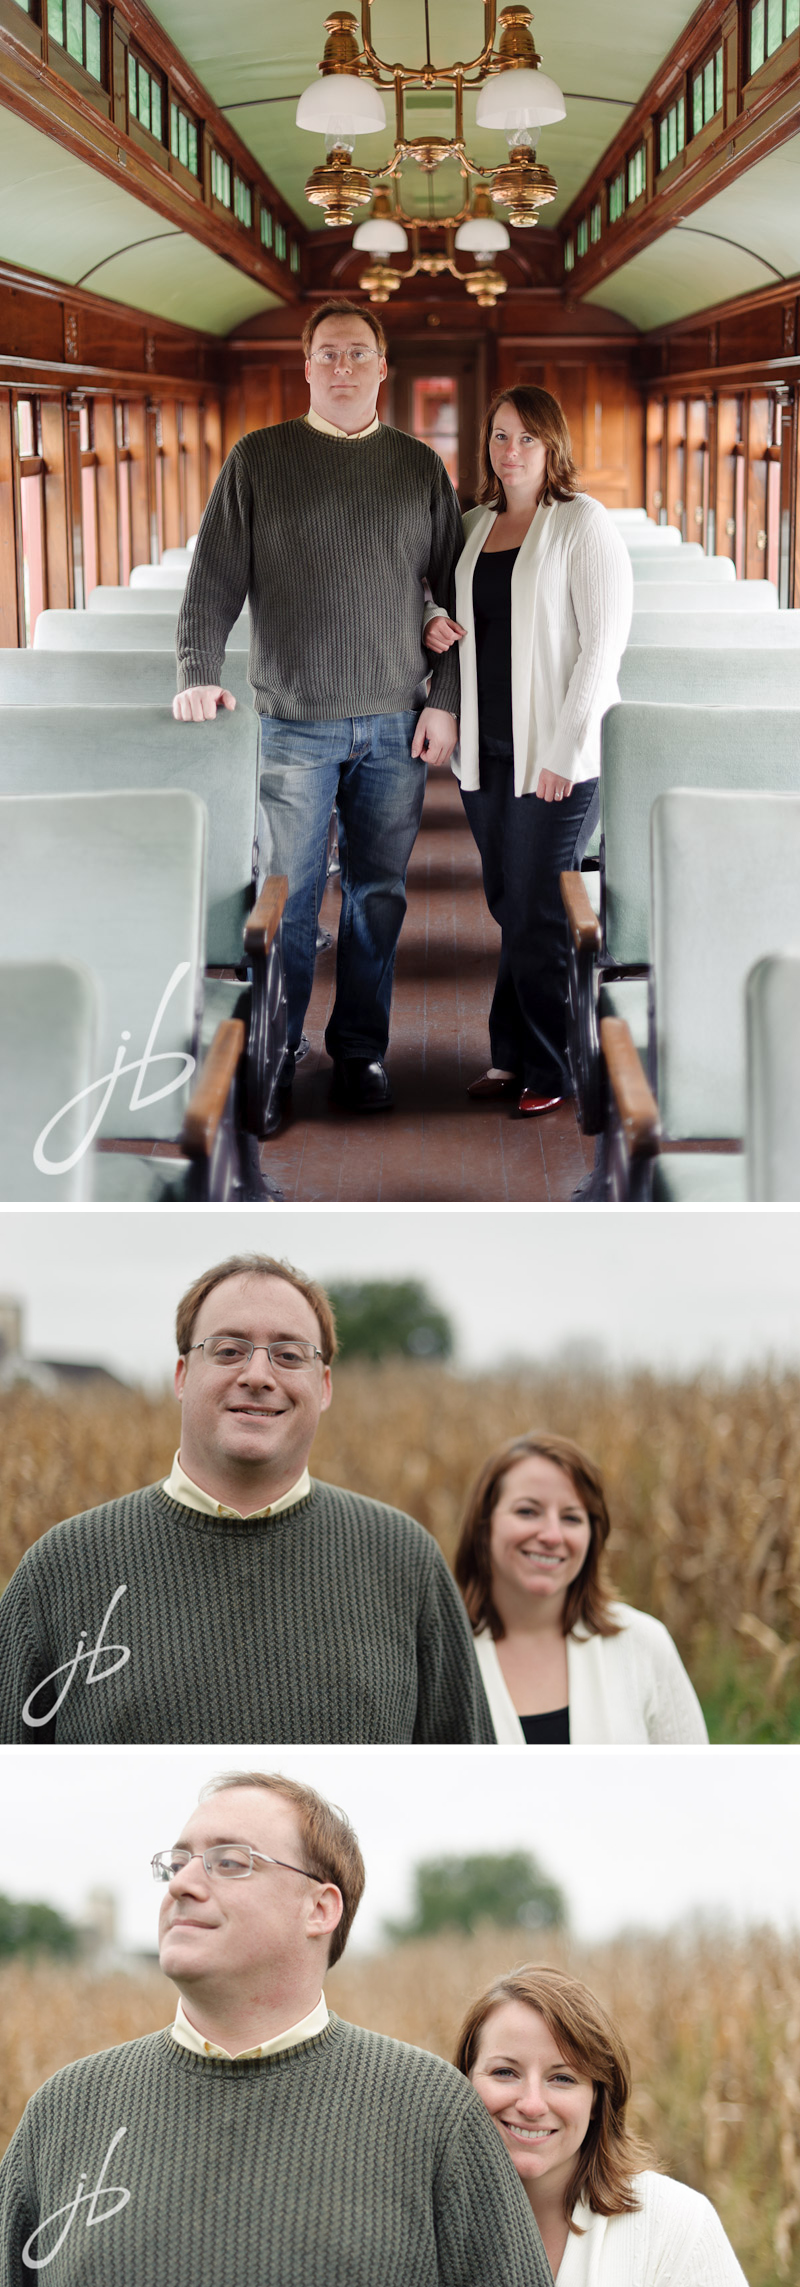 Strasburg PA engagement photography by Jeremy Bischoff Photography